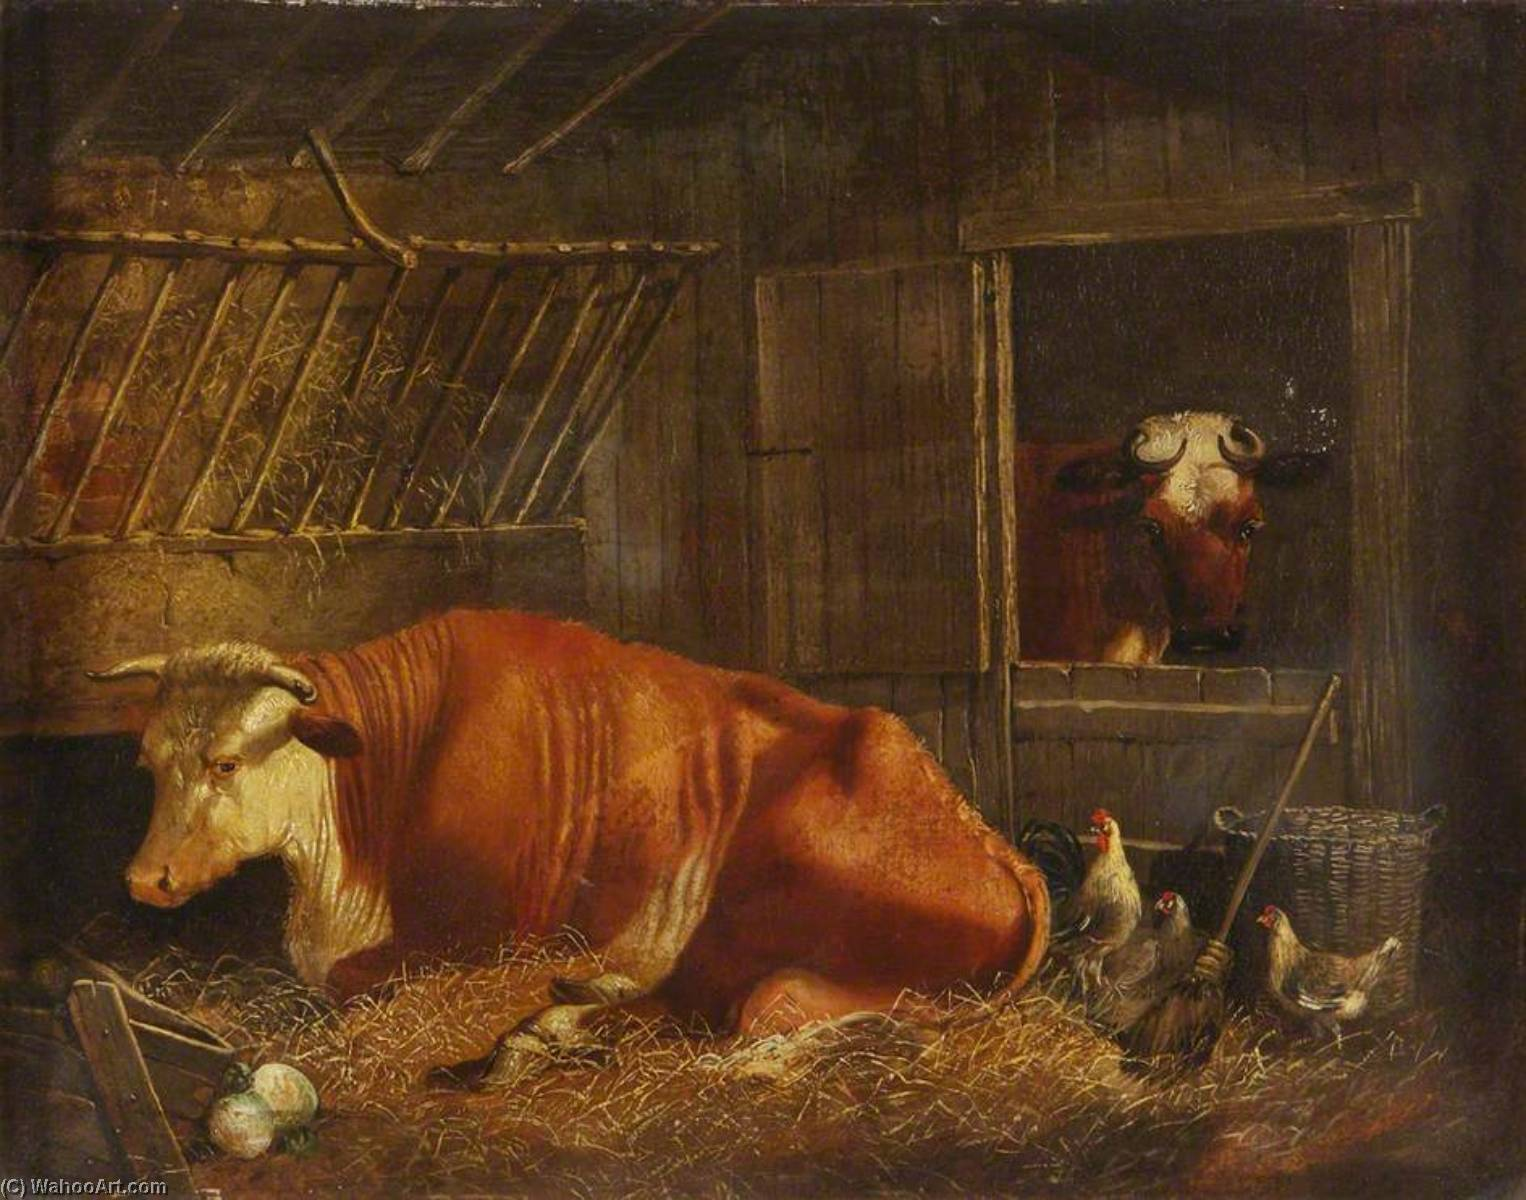 Hereford Cow, Oil On Canvas by Edmund Ward Gill